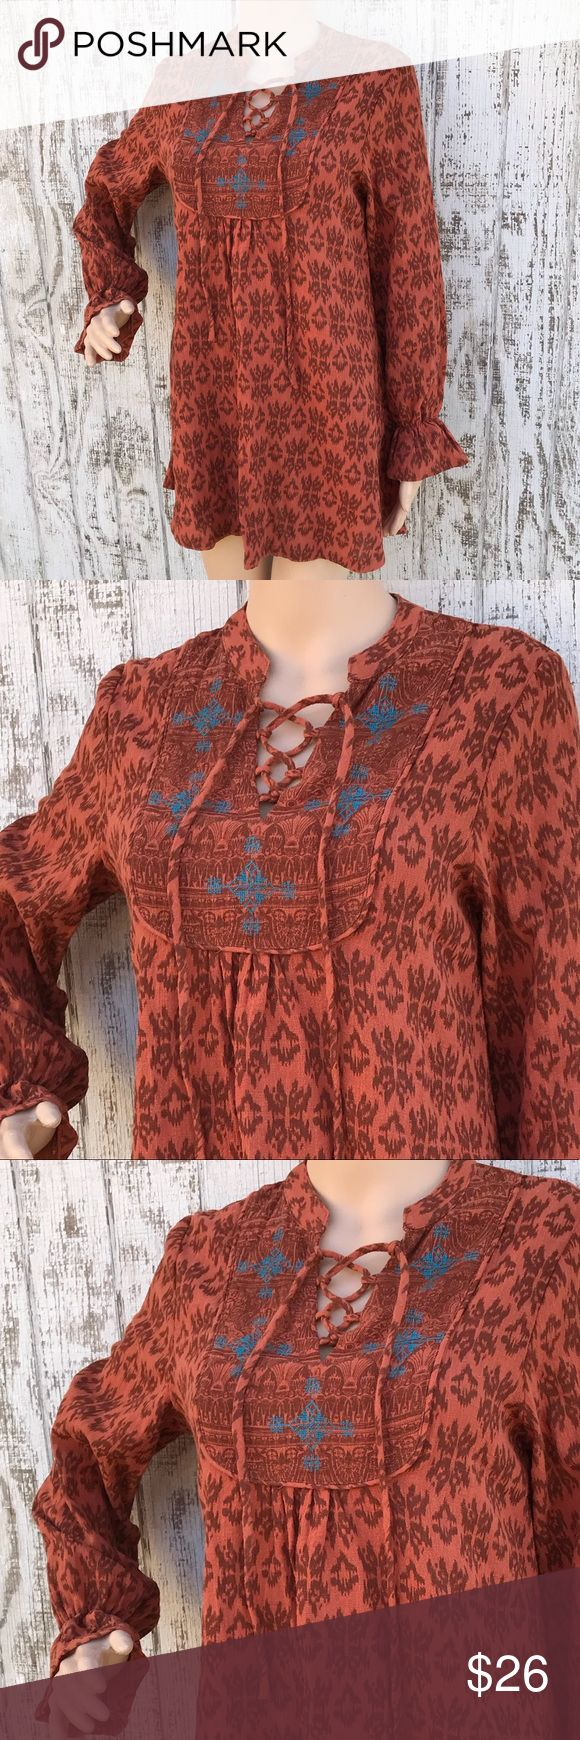 Hayden LA BoHo Tribal Look Tunic Hayden LA BoHo Tribal Look Tunic Size Small Like New 19 inches across the front armpit to armpit  30 inches in length shoulder to hem  Earthy Rust Brown Tone with great detail at the bodice Tie Front lacing Fabulous ❤️ Hayden LA Tops Tunics